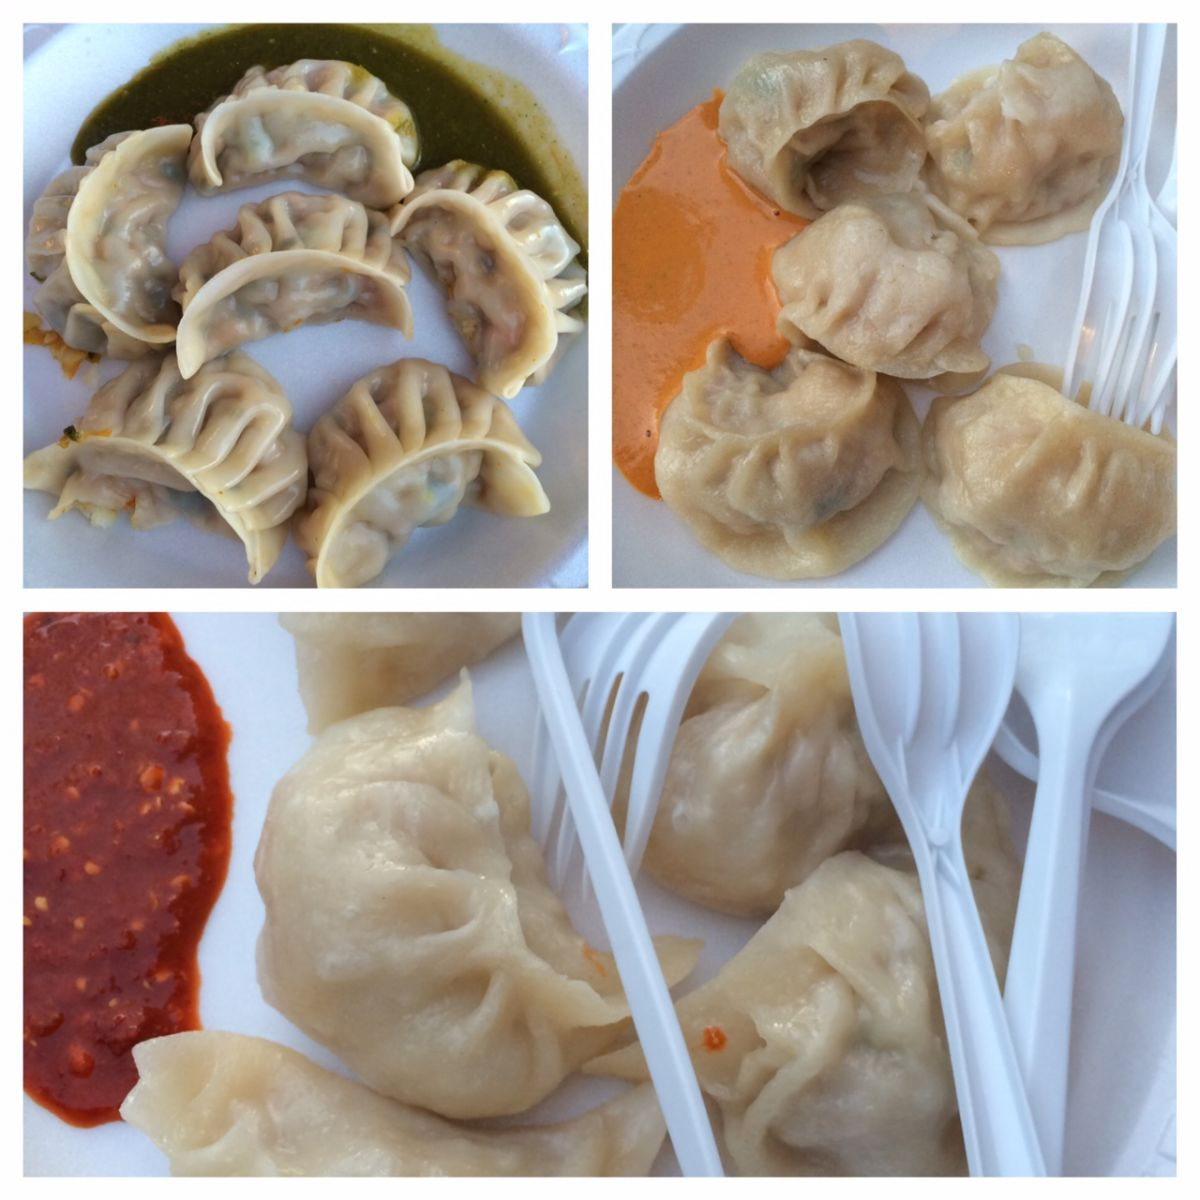 Selection of momos from Jackson Heights, Queens